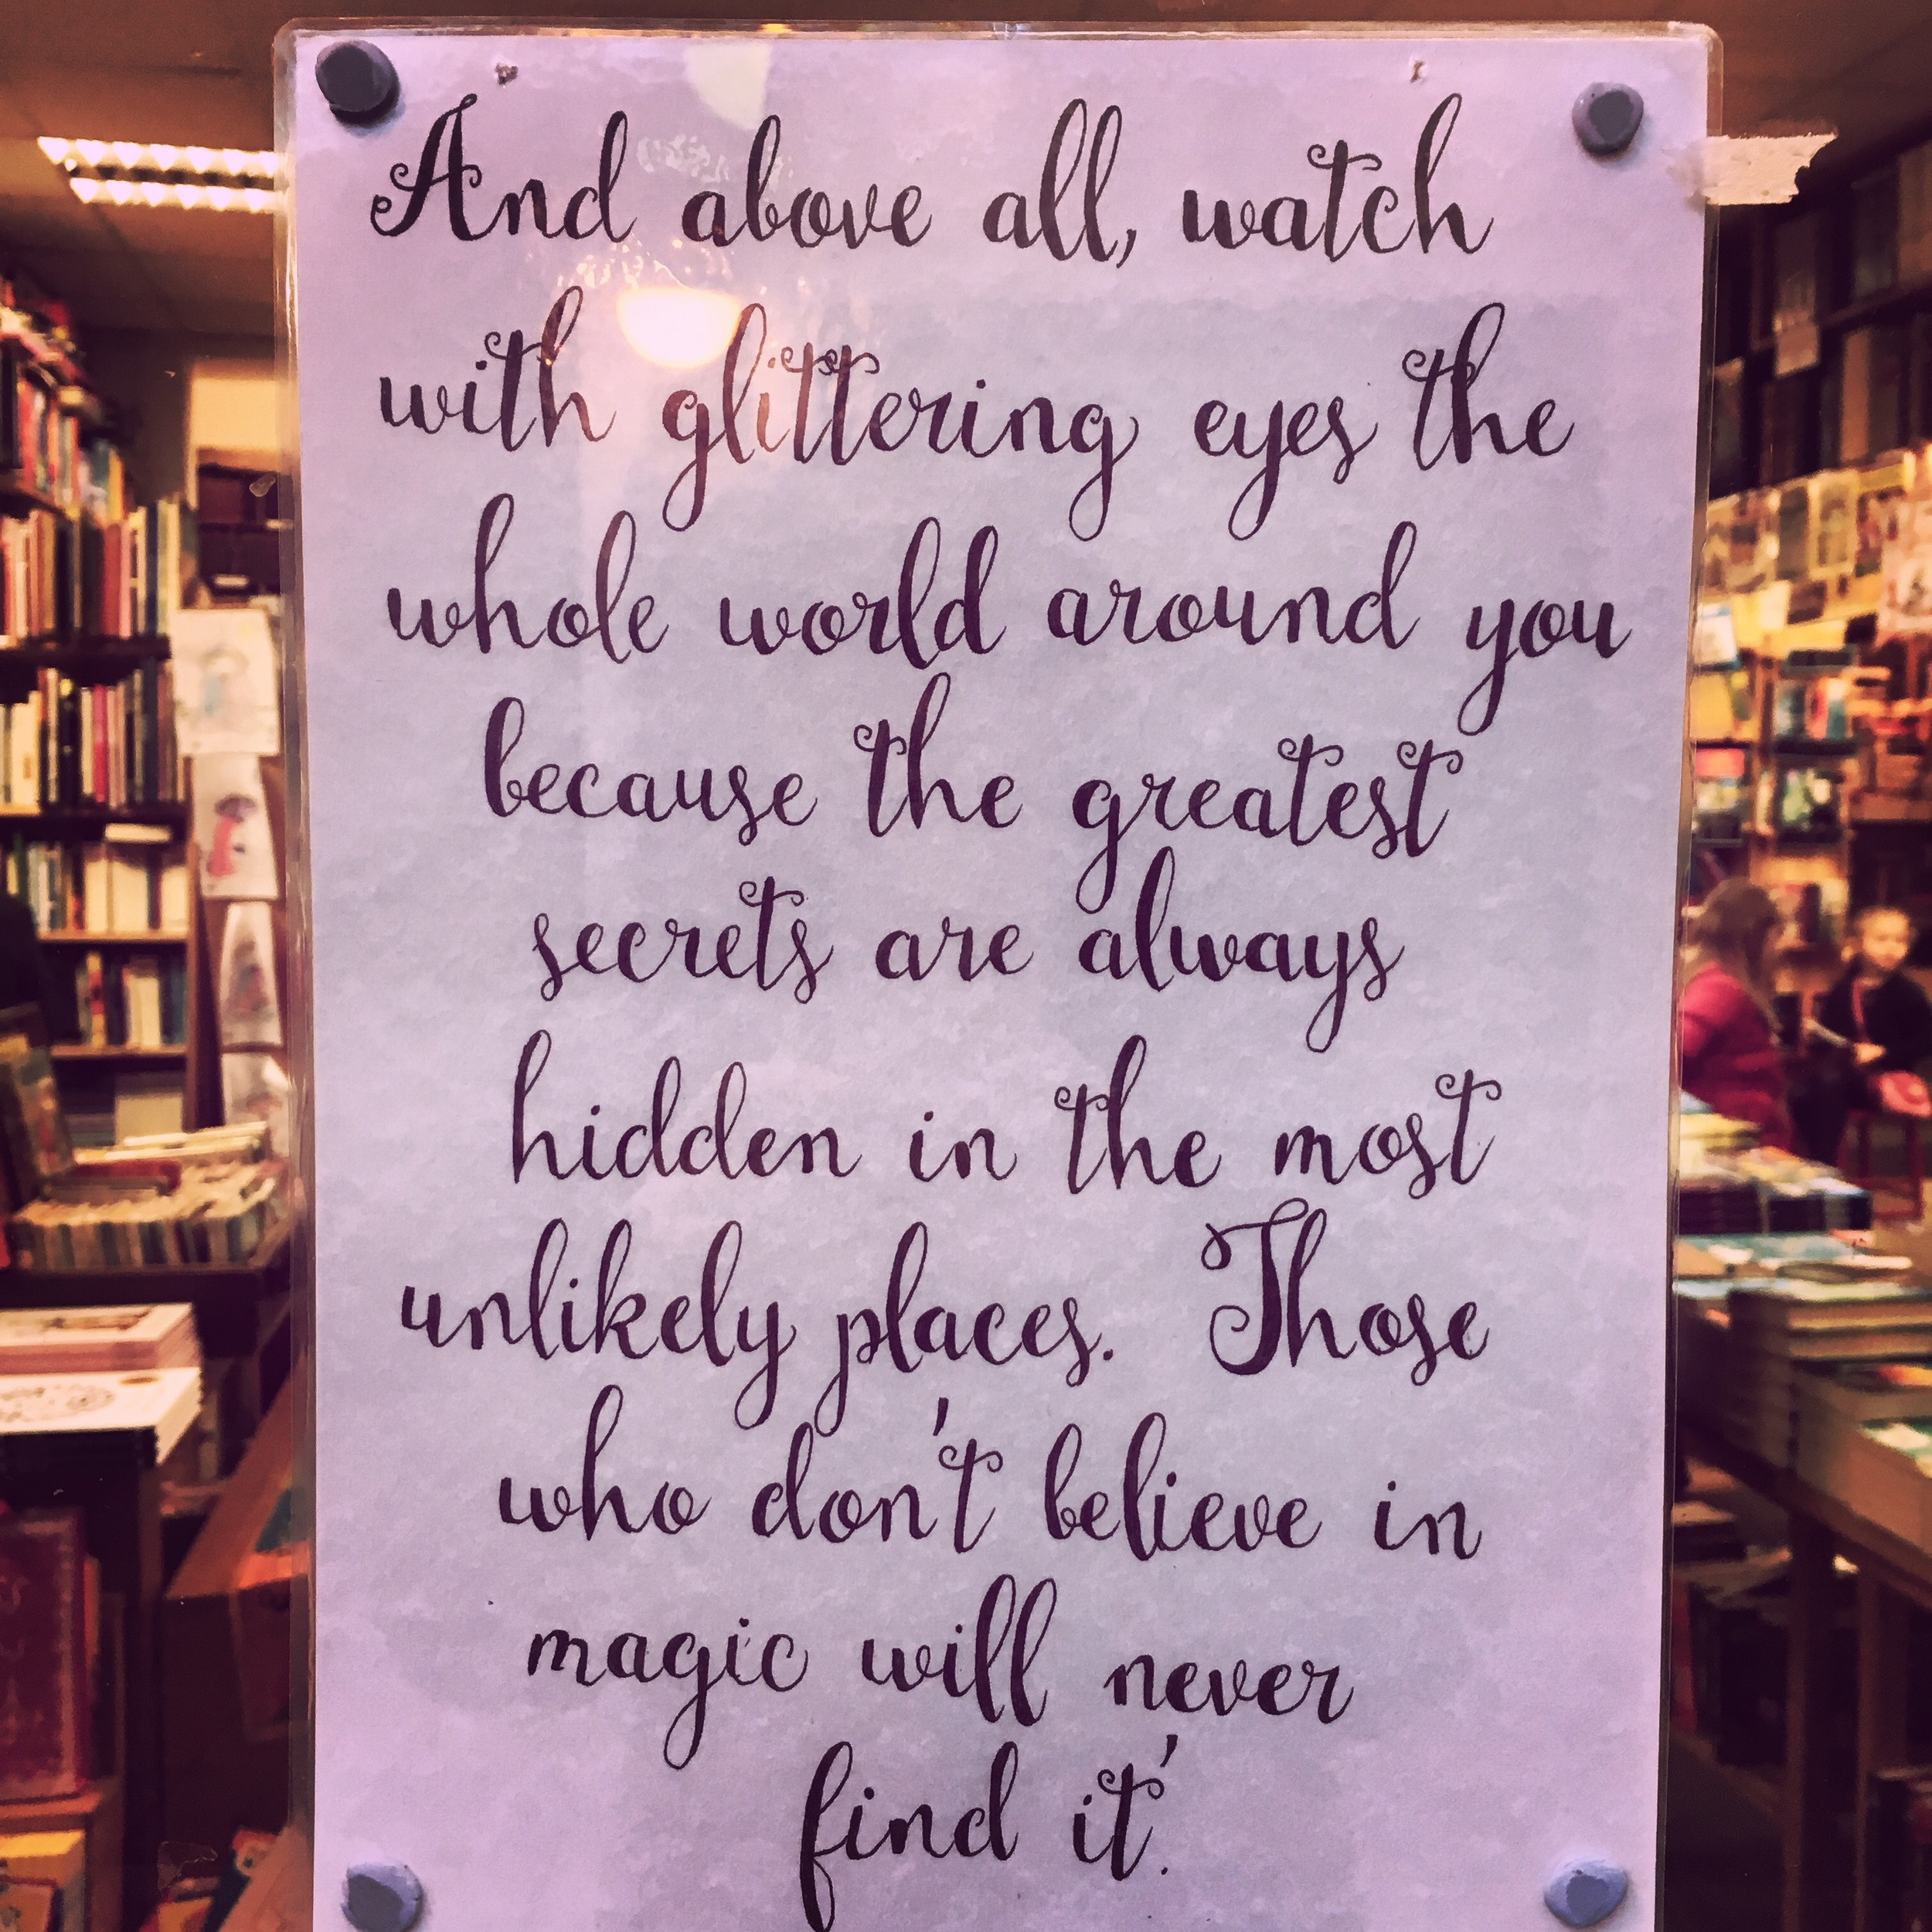 This bookstore in Galway says it best.